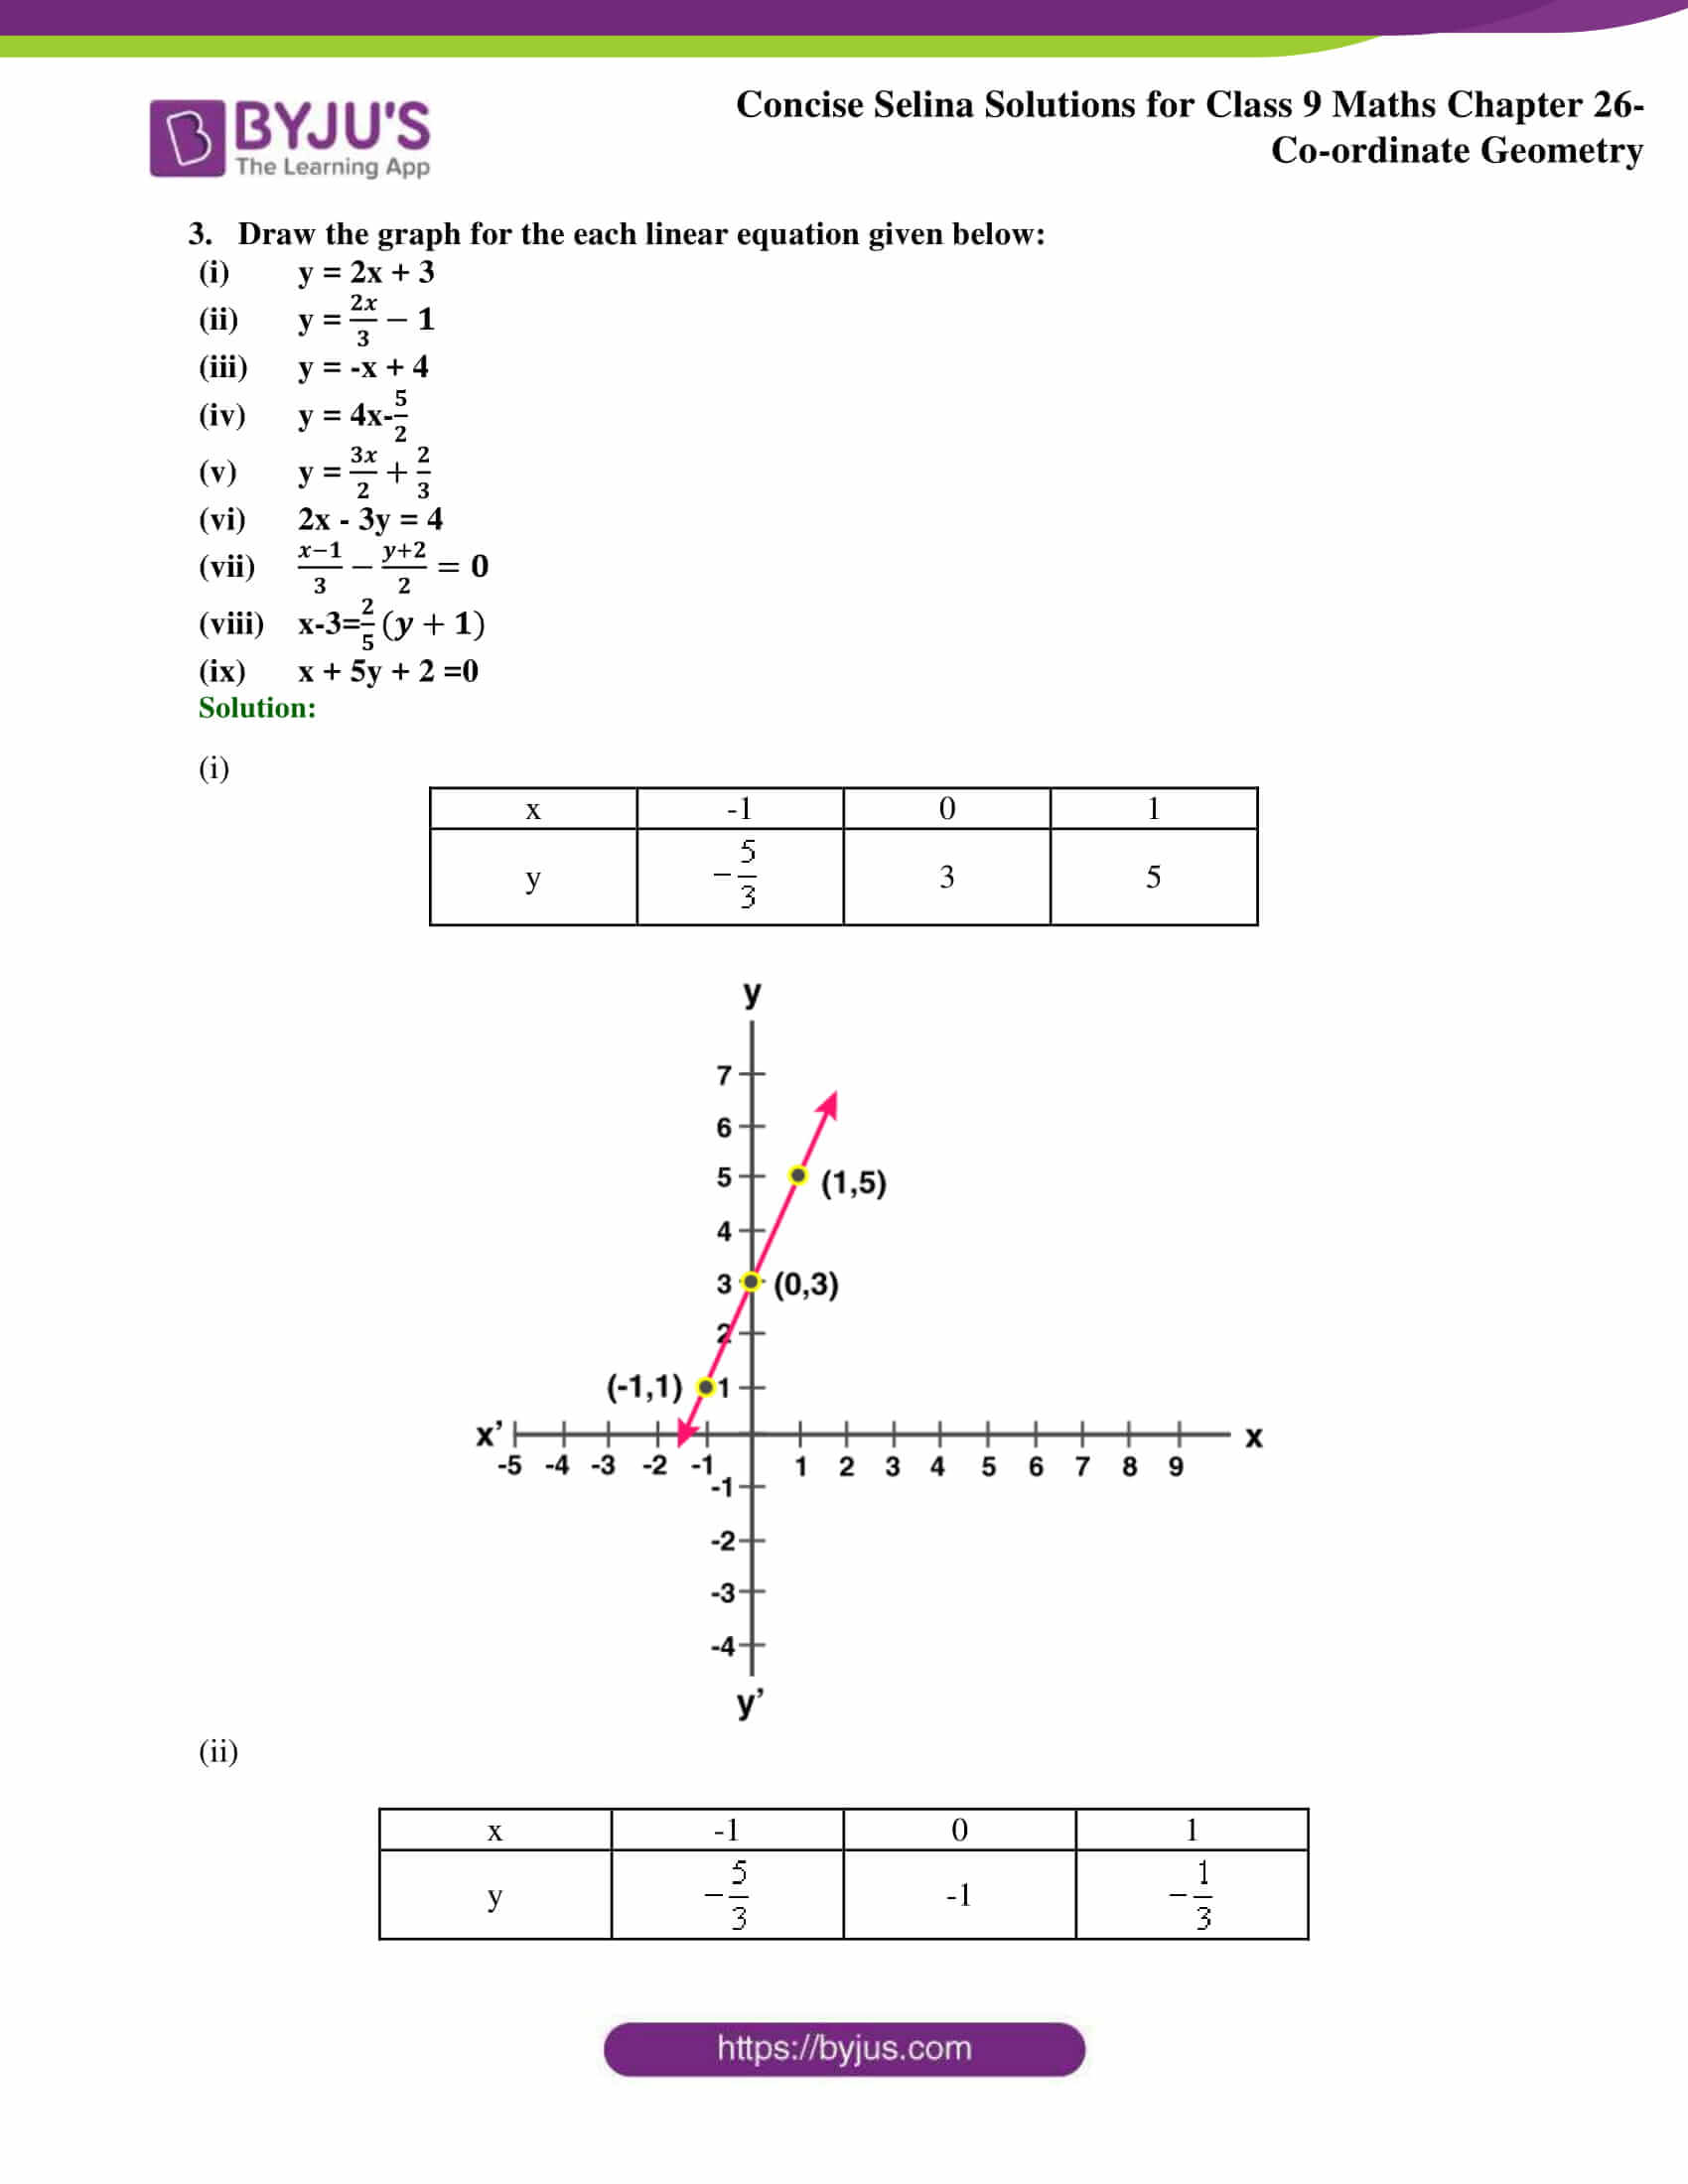 Selina Solutions for Class 9 Maths Chapter 26 part 27